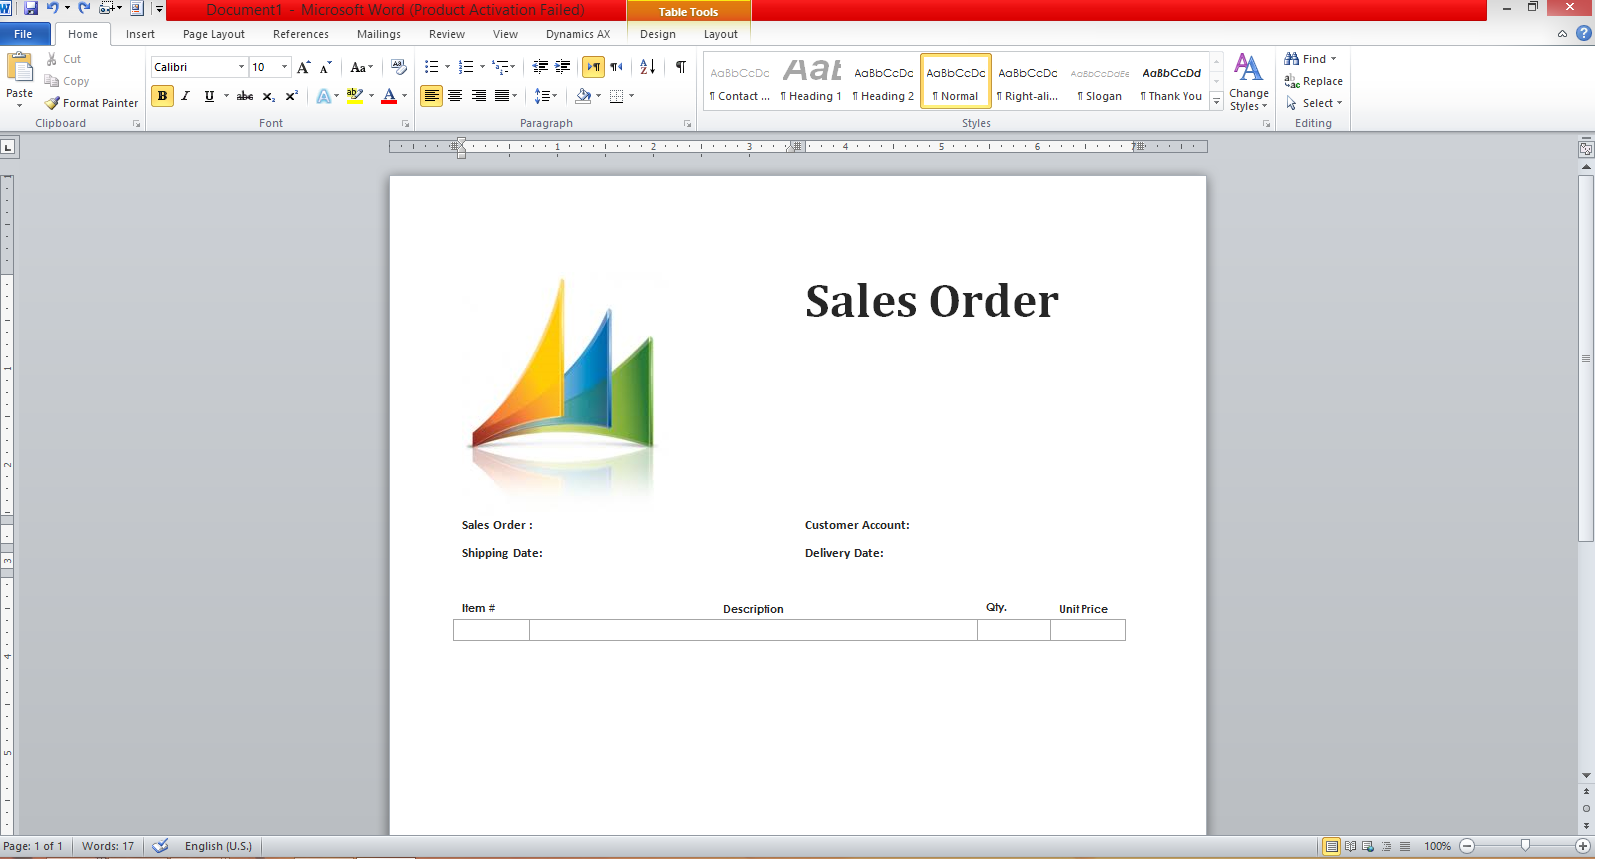 dynamics ax tips export s order data to ms word template add bookmark to each label bookmarks will be used to map the s order fields to the word template